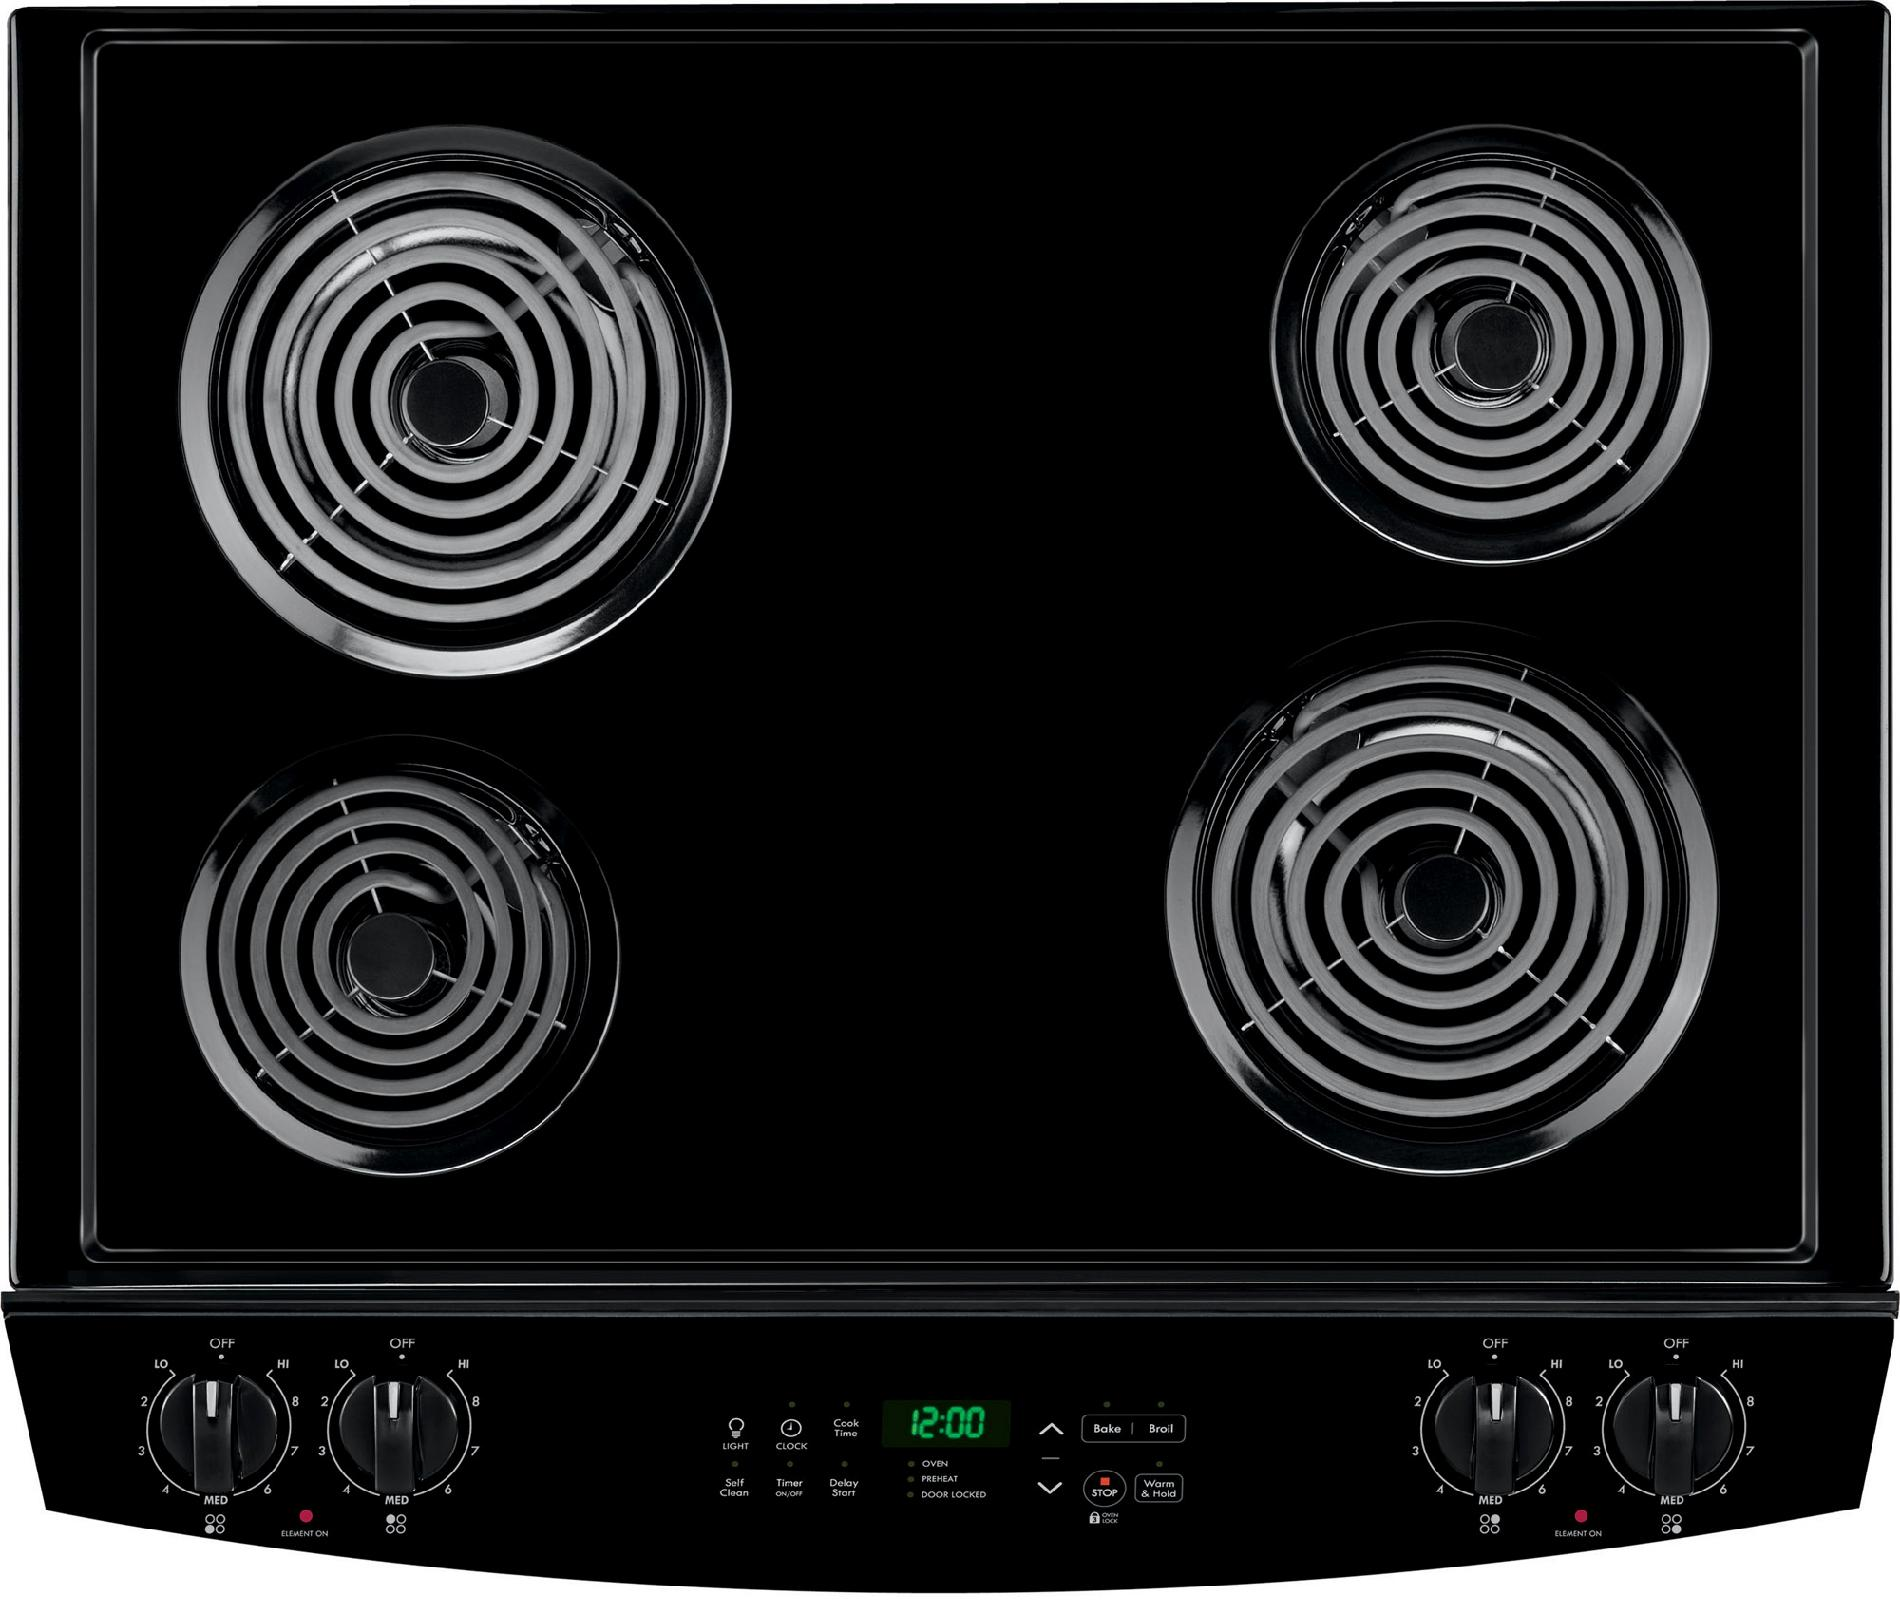 Kenmore 4.2 cu. ft. Self-Clean Drop-In Electric Range - Black